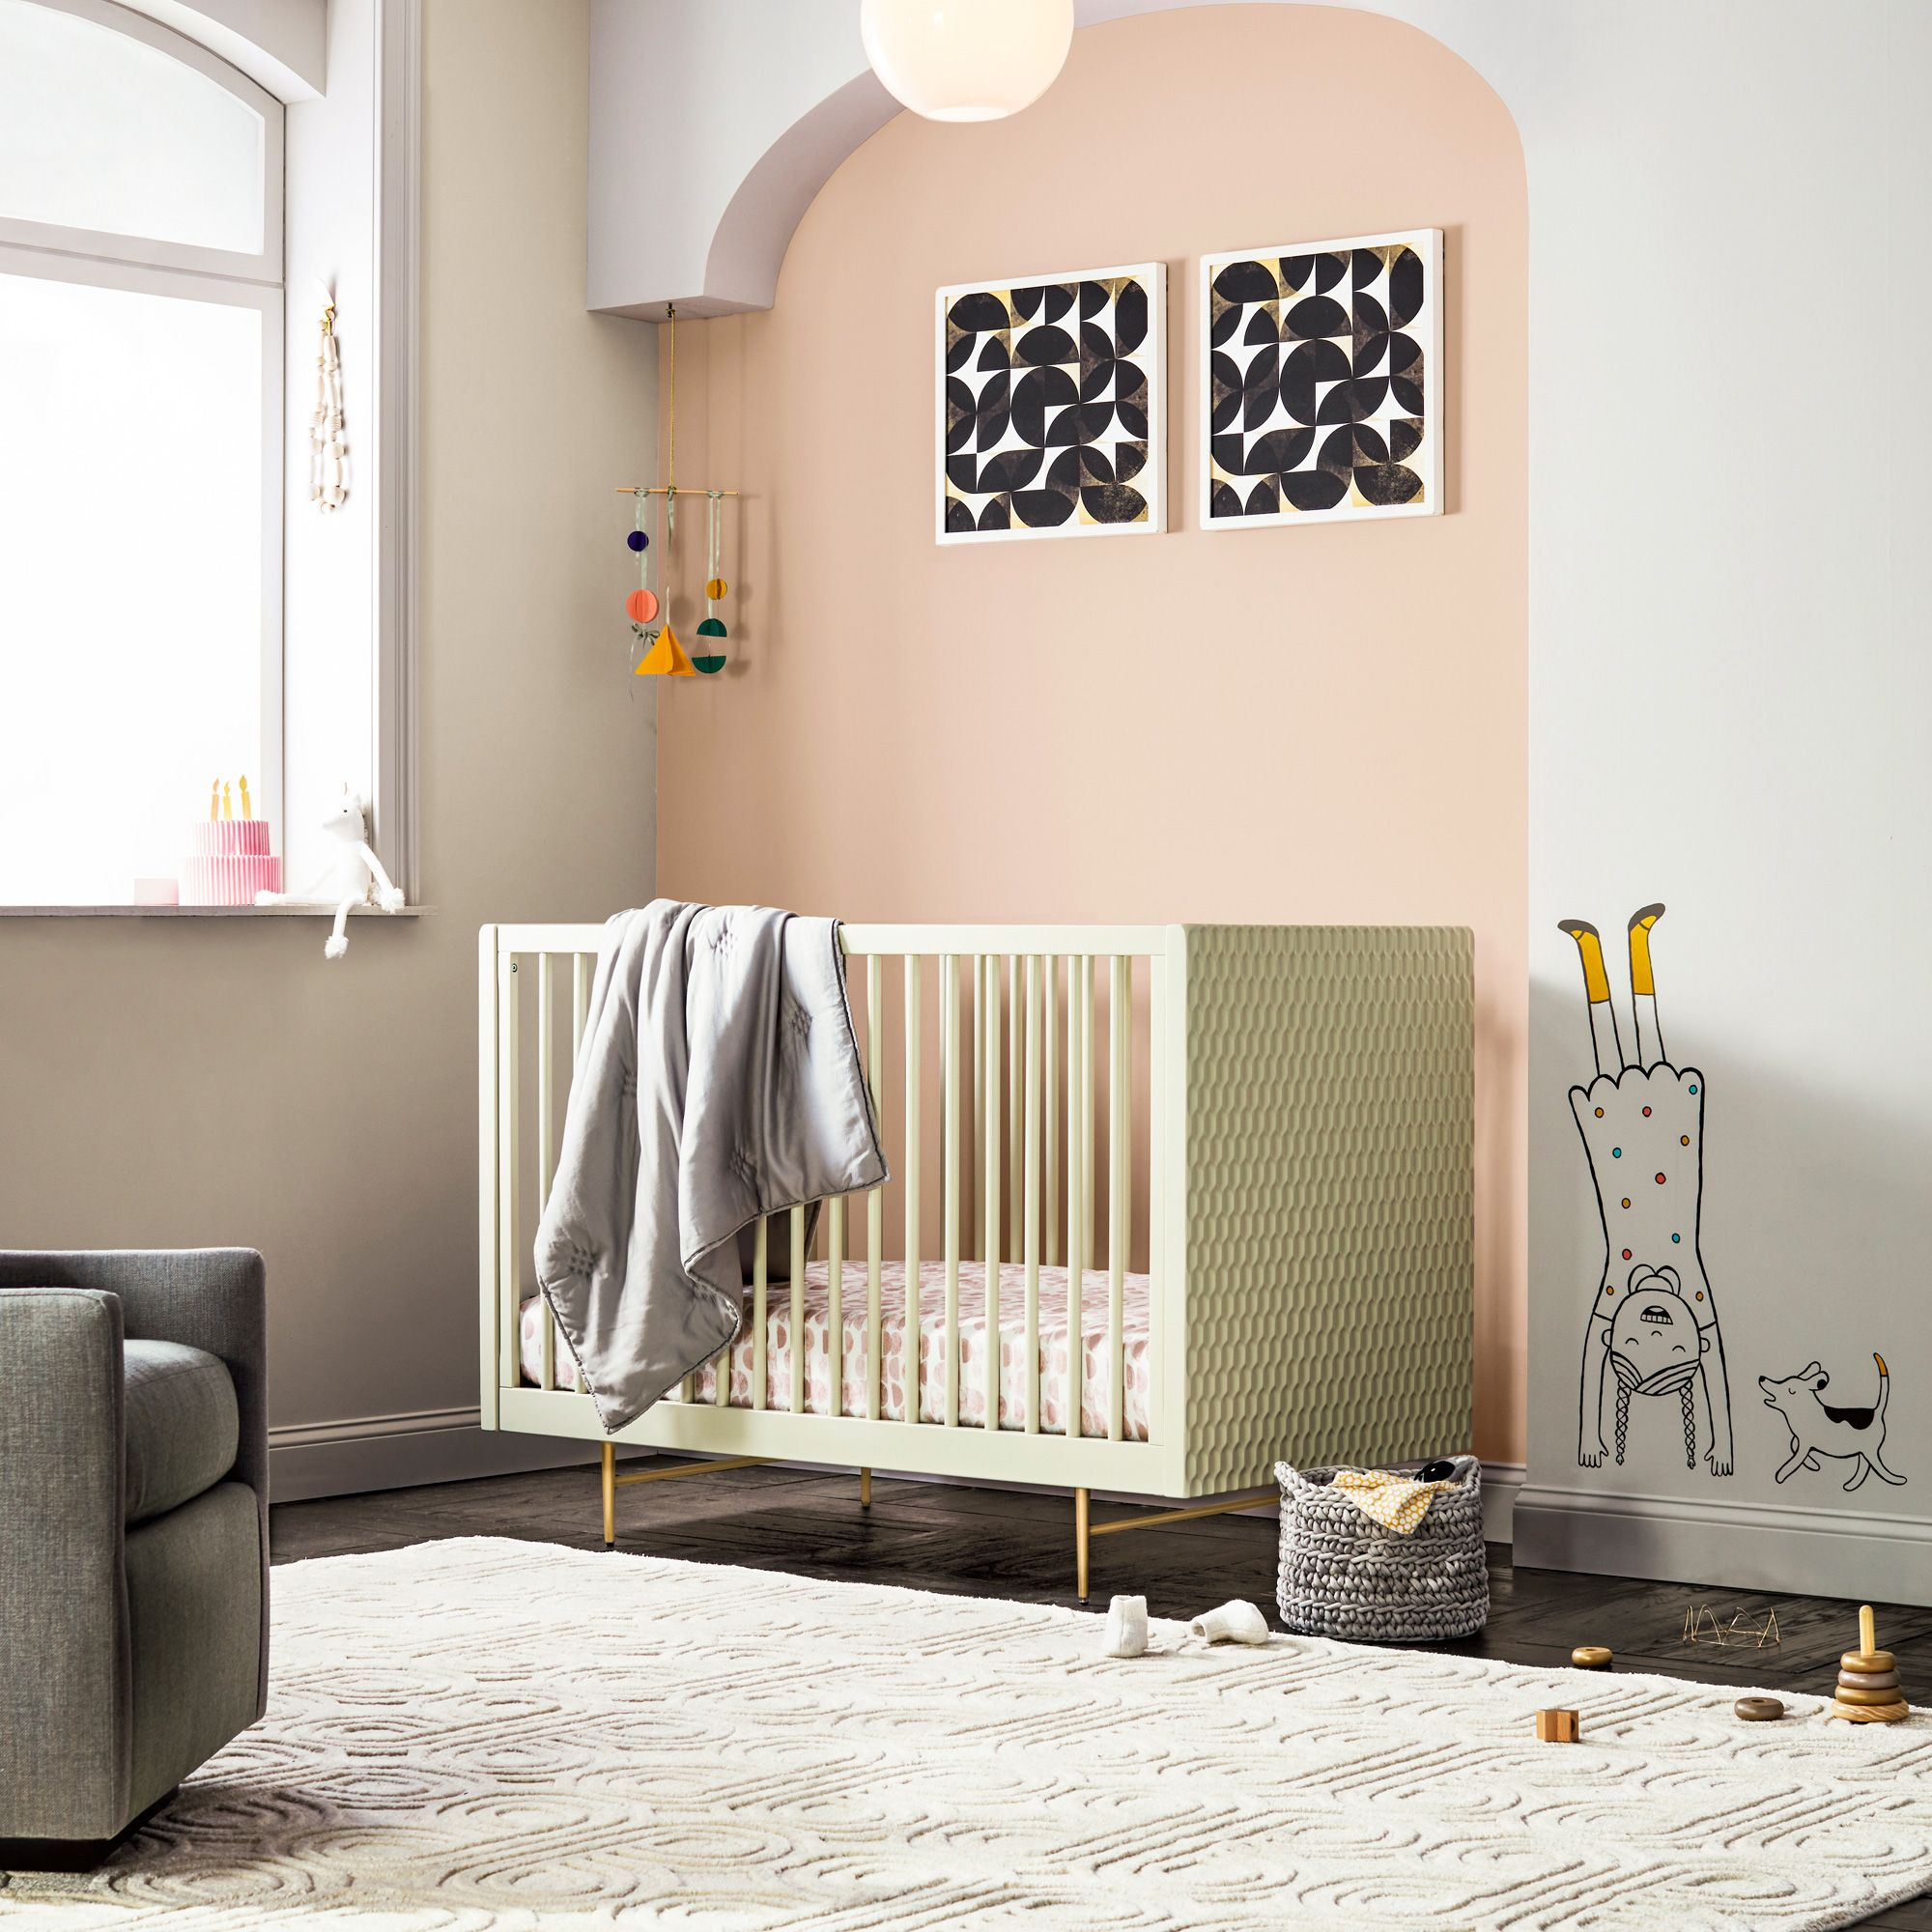 Nursery Interest Free Credit